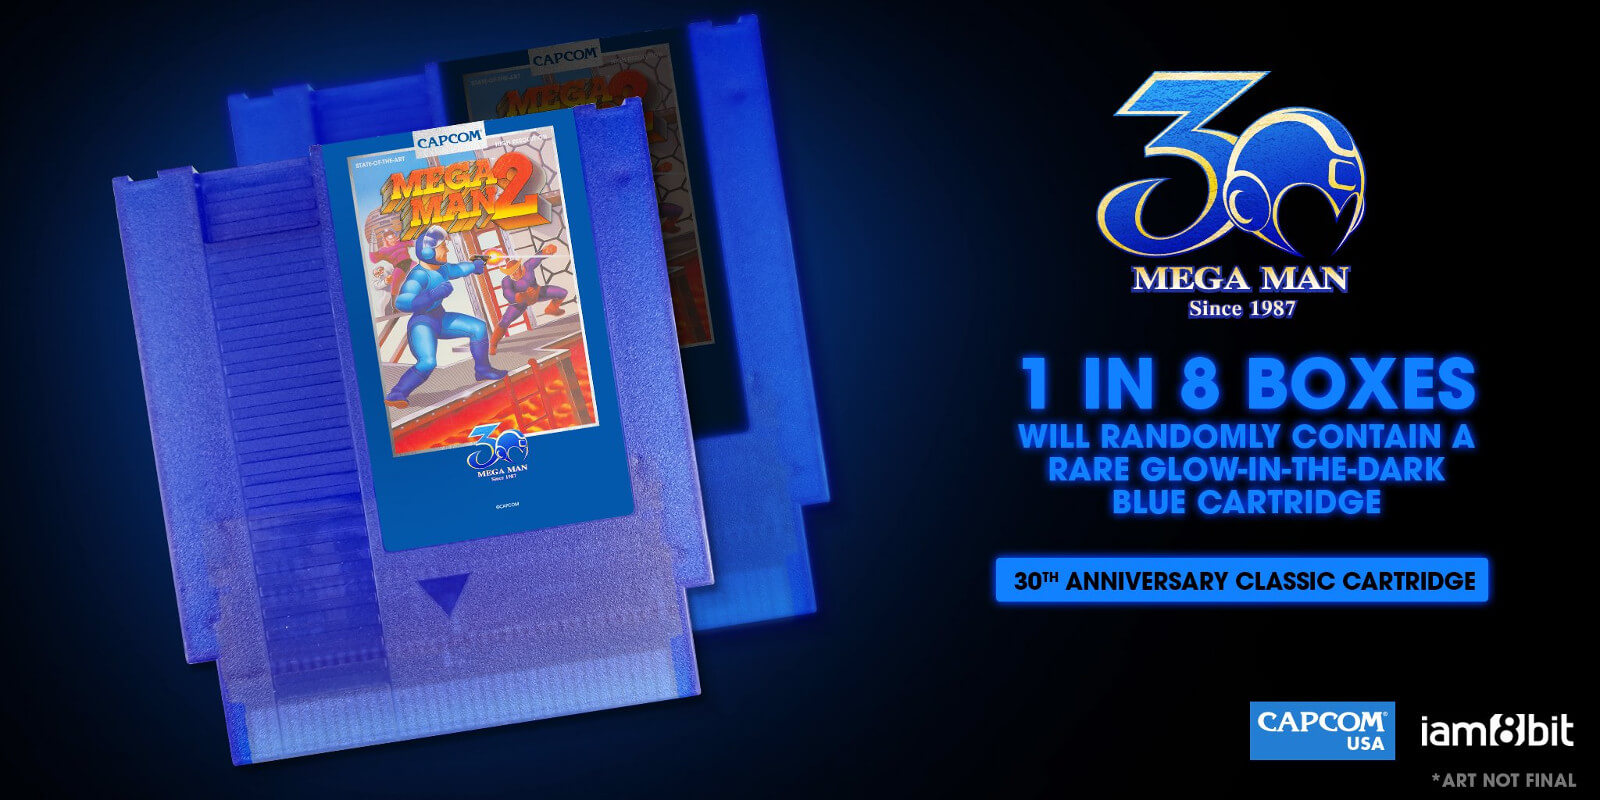 iam8bit lança cartucho do Mega Man 2